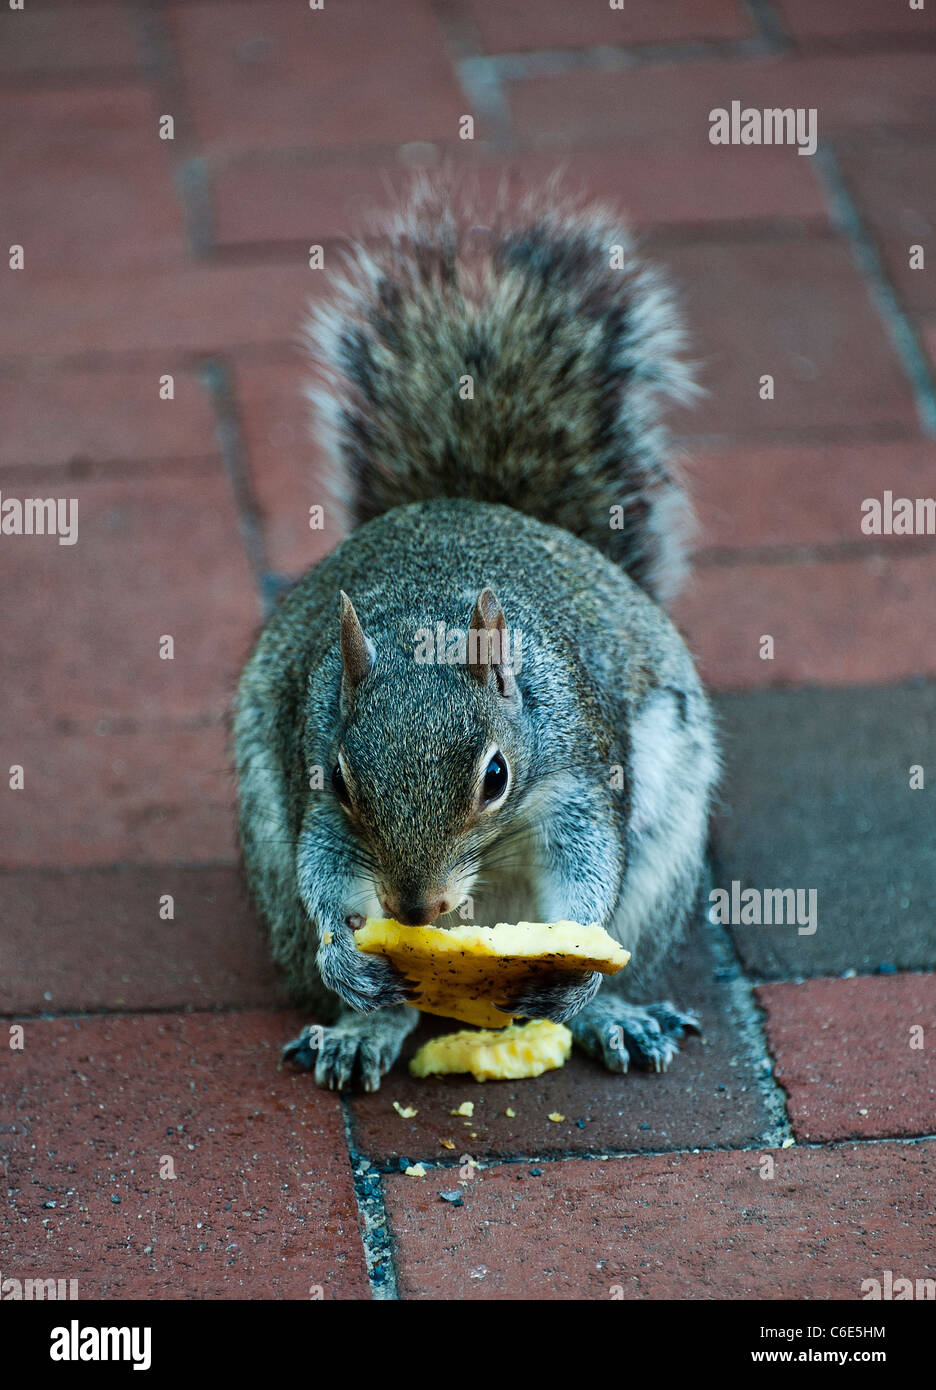 Squirrel eating discarded human food. - Stock Image